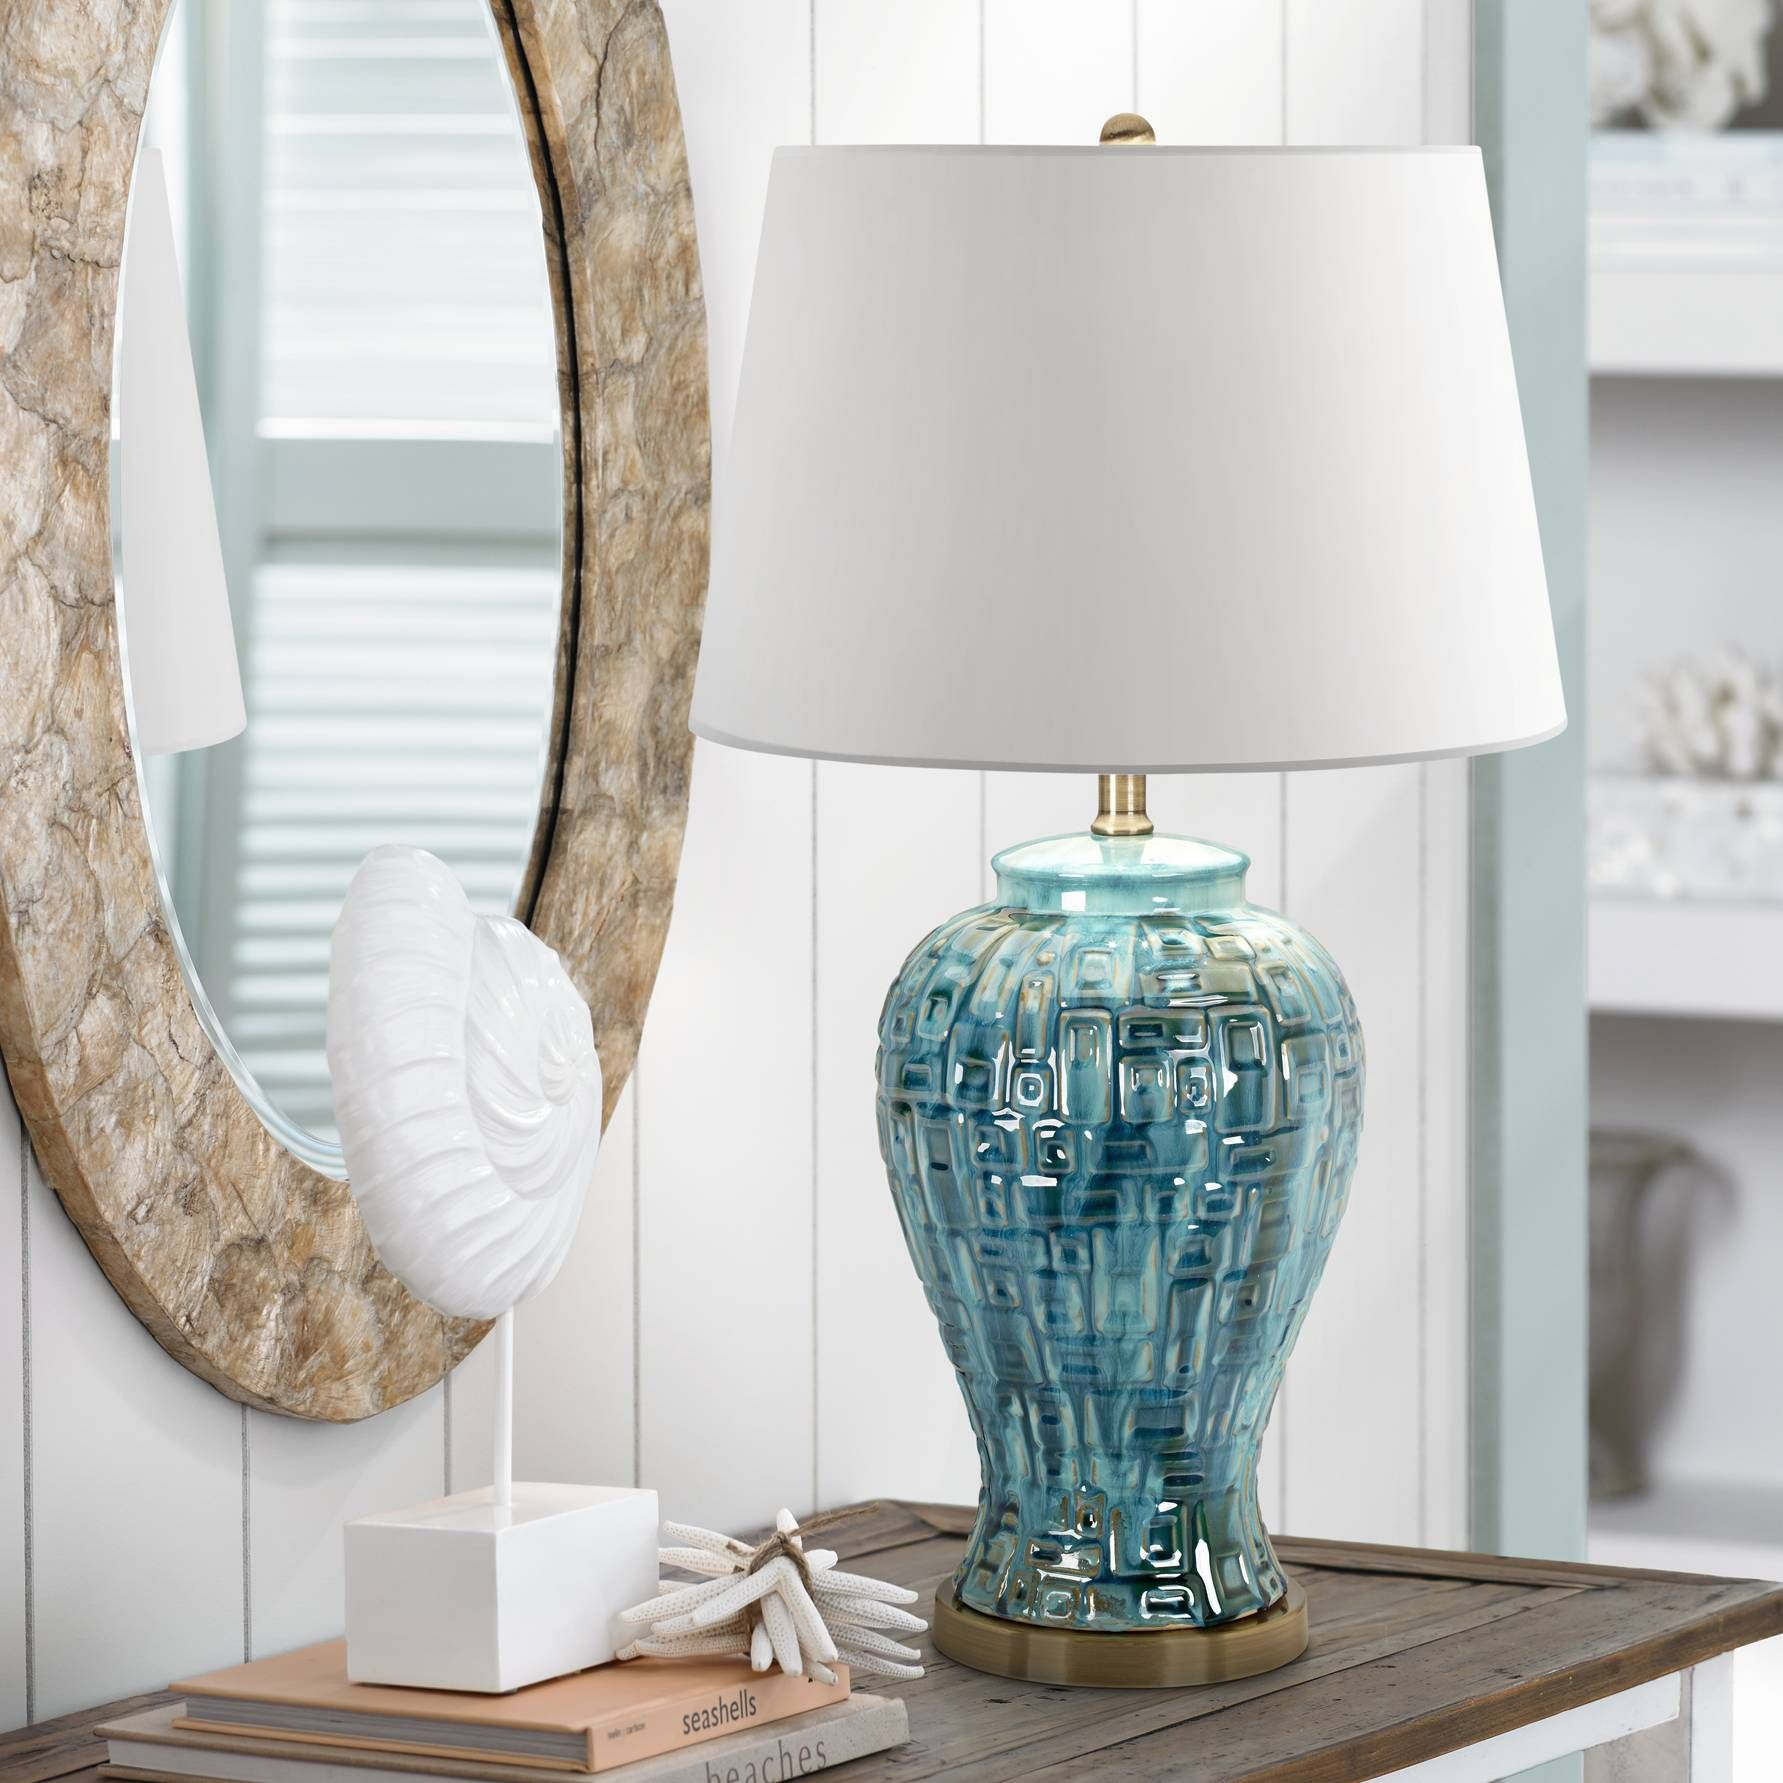 Teal temple jar 27 high ceramic table lamp ceramic table lamps teal temple jar 27 high ceramic table lamp geotapseo Choice Image